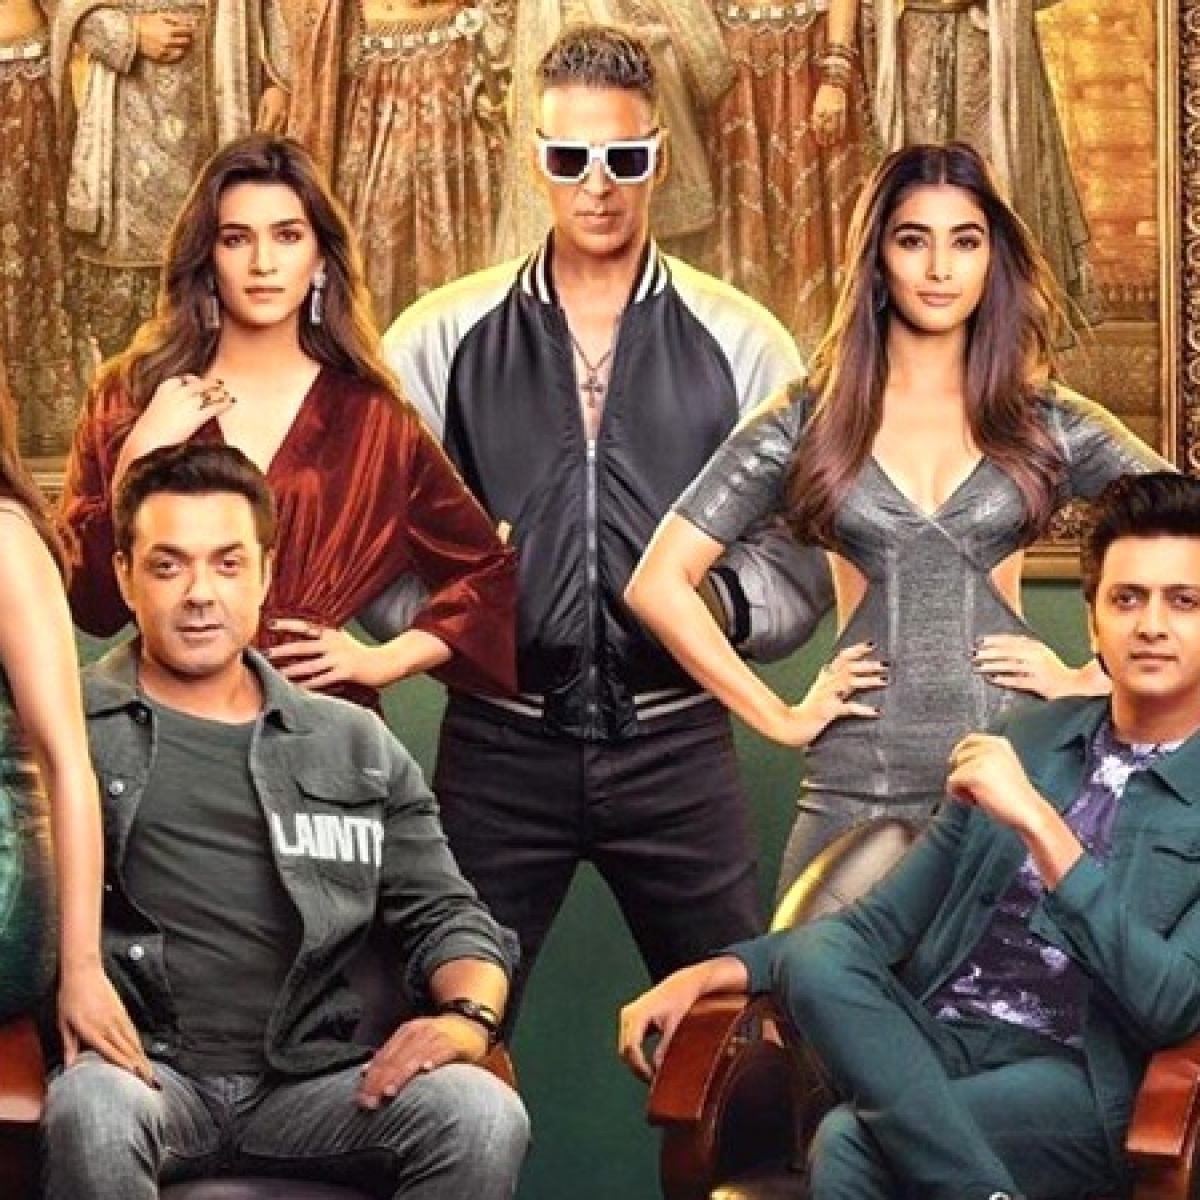 Akshay Kumar would reward 'Housefull 4' co-stars for being punctual on set